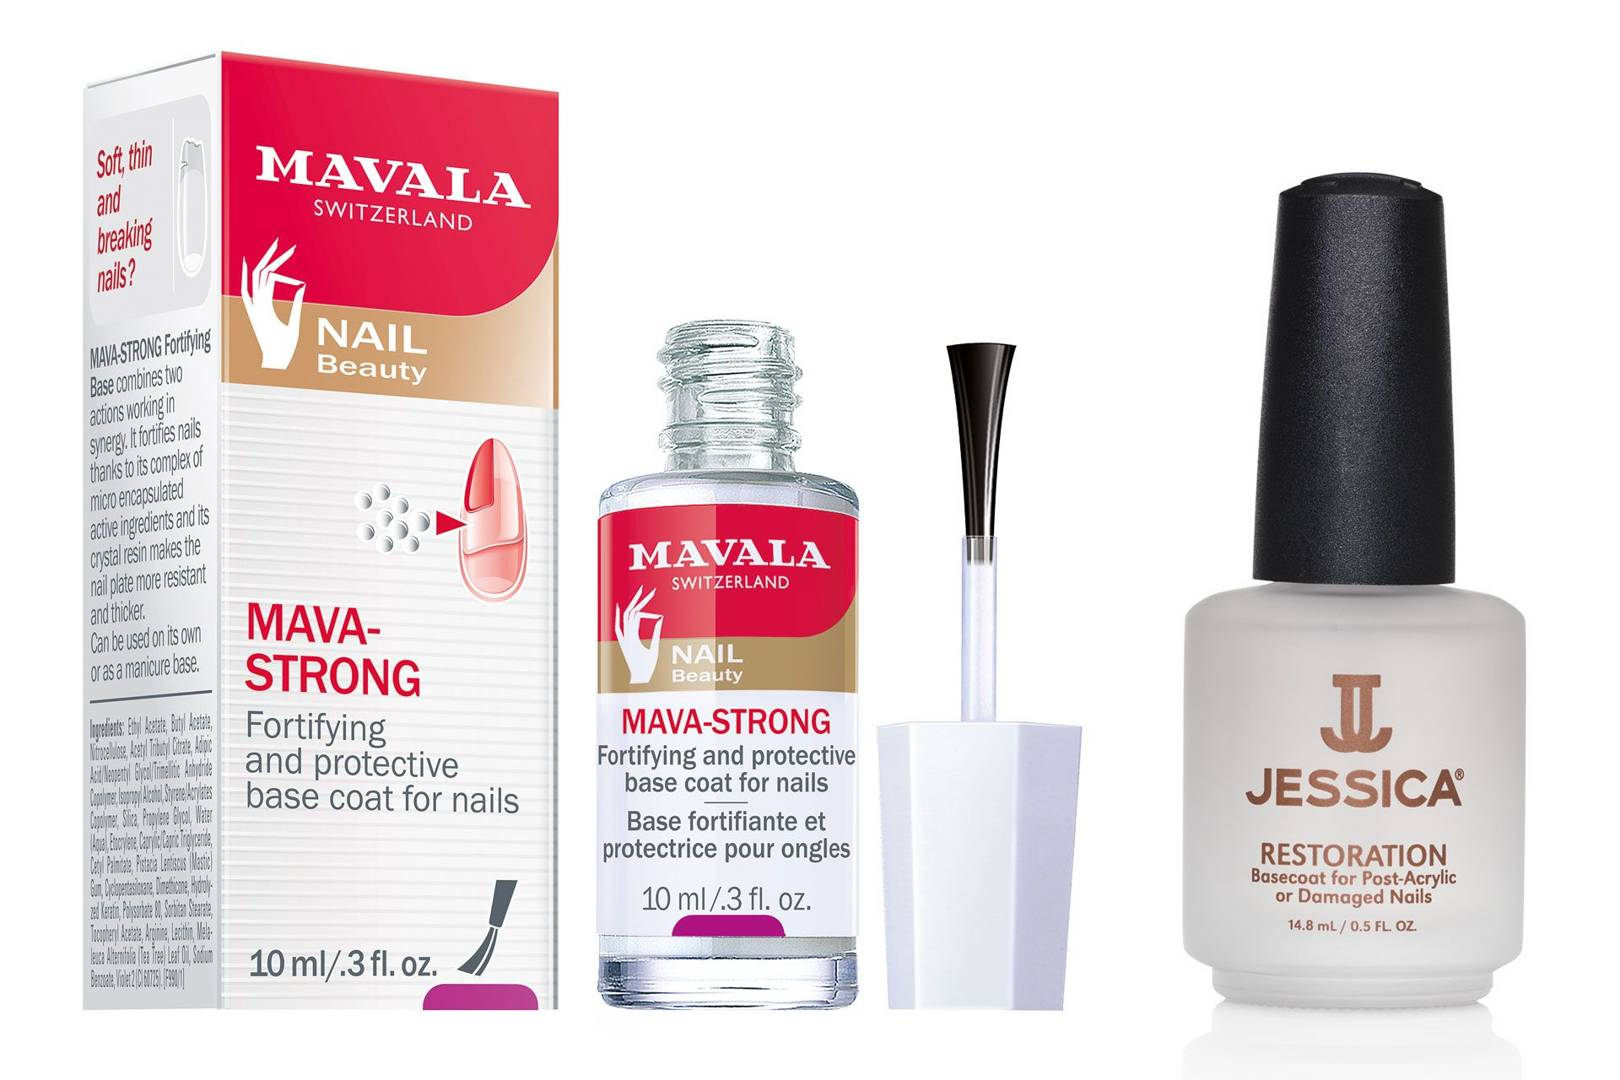 Healthy nail tips - how to prevent nail breakage & damage | Glamour UK